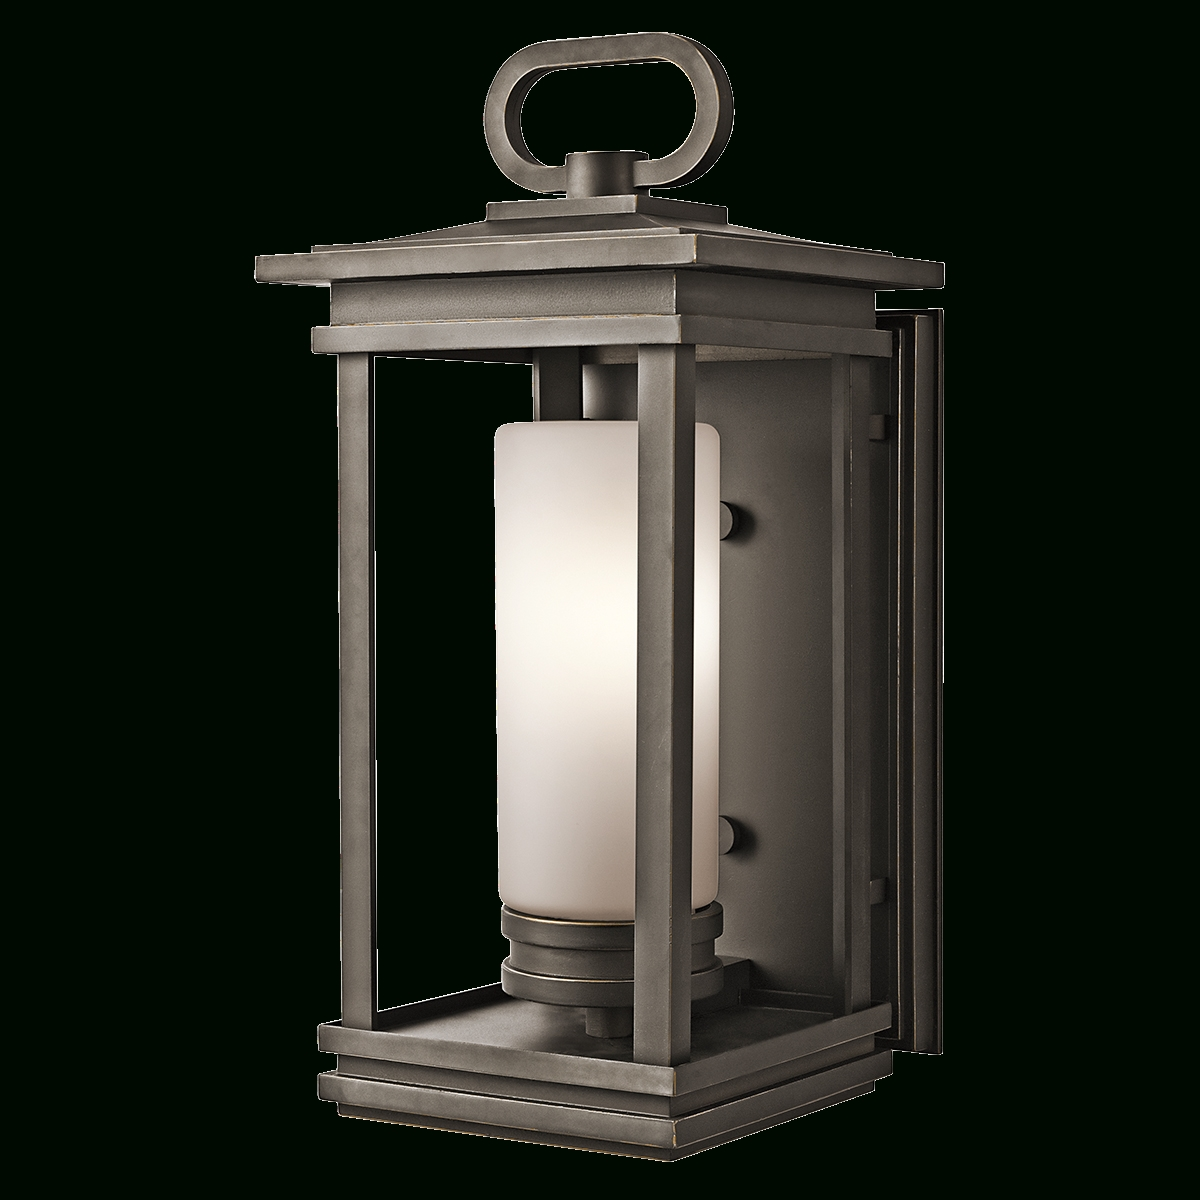 Kichler – South Hope Large Fluorescent Outdoor Lantern In Bronze Inside Famous Kichler Outdoor Lanterns (View 10 of 20)